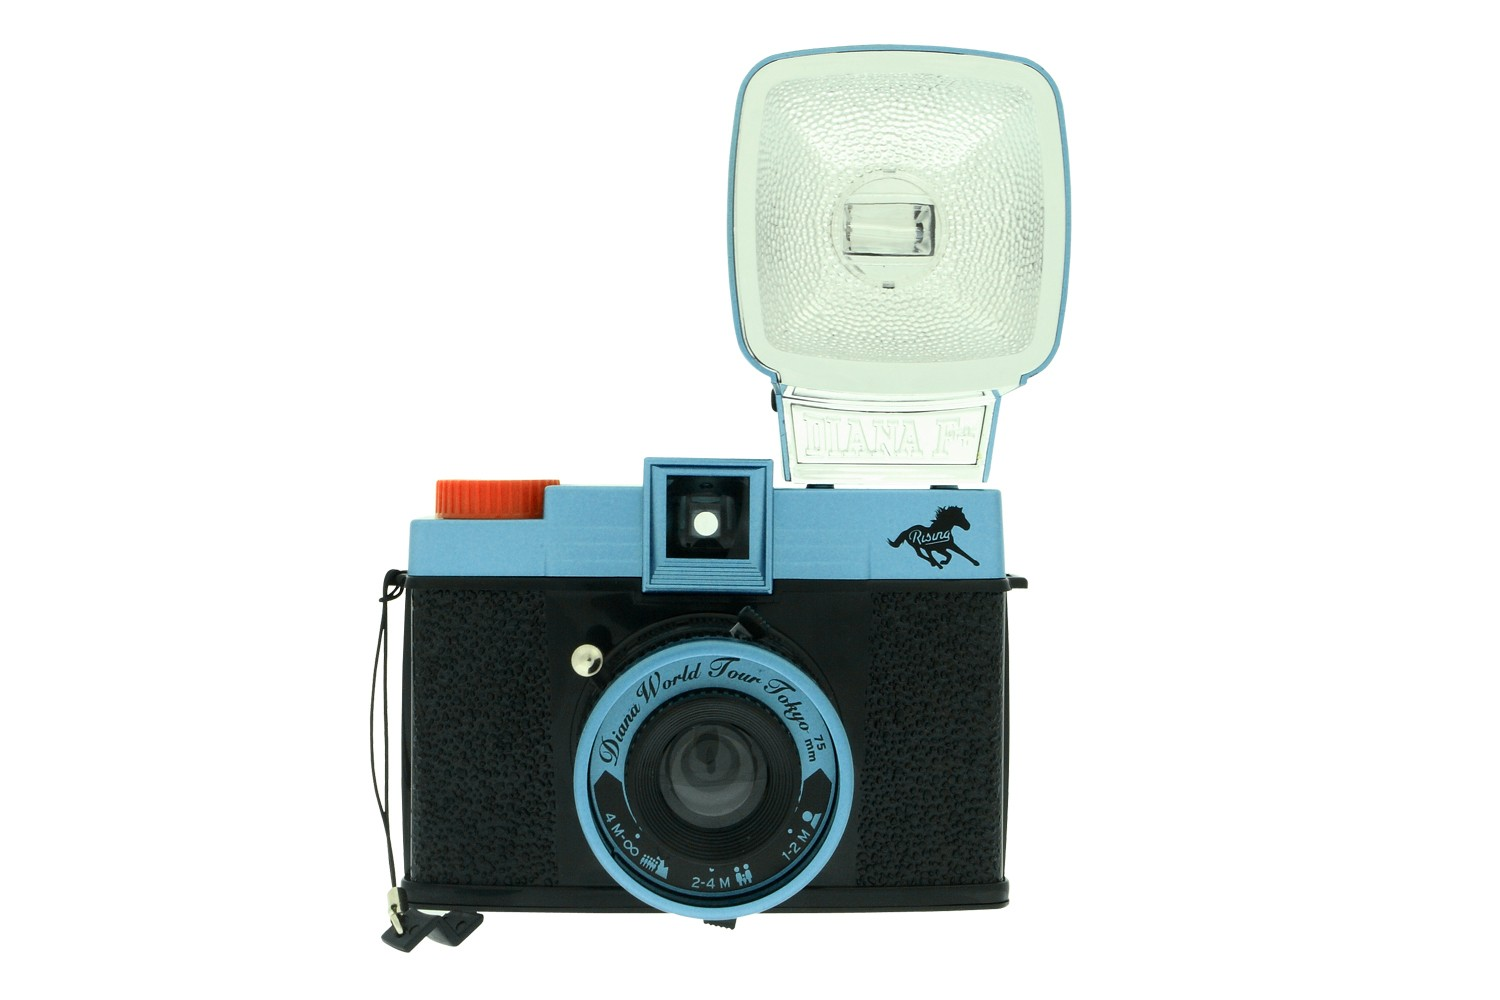 Diana F+ Camera and Flash (Tokyo Rising Edition)